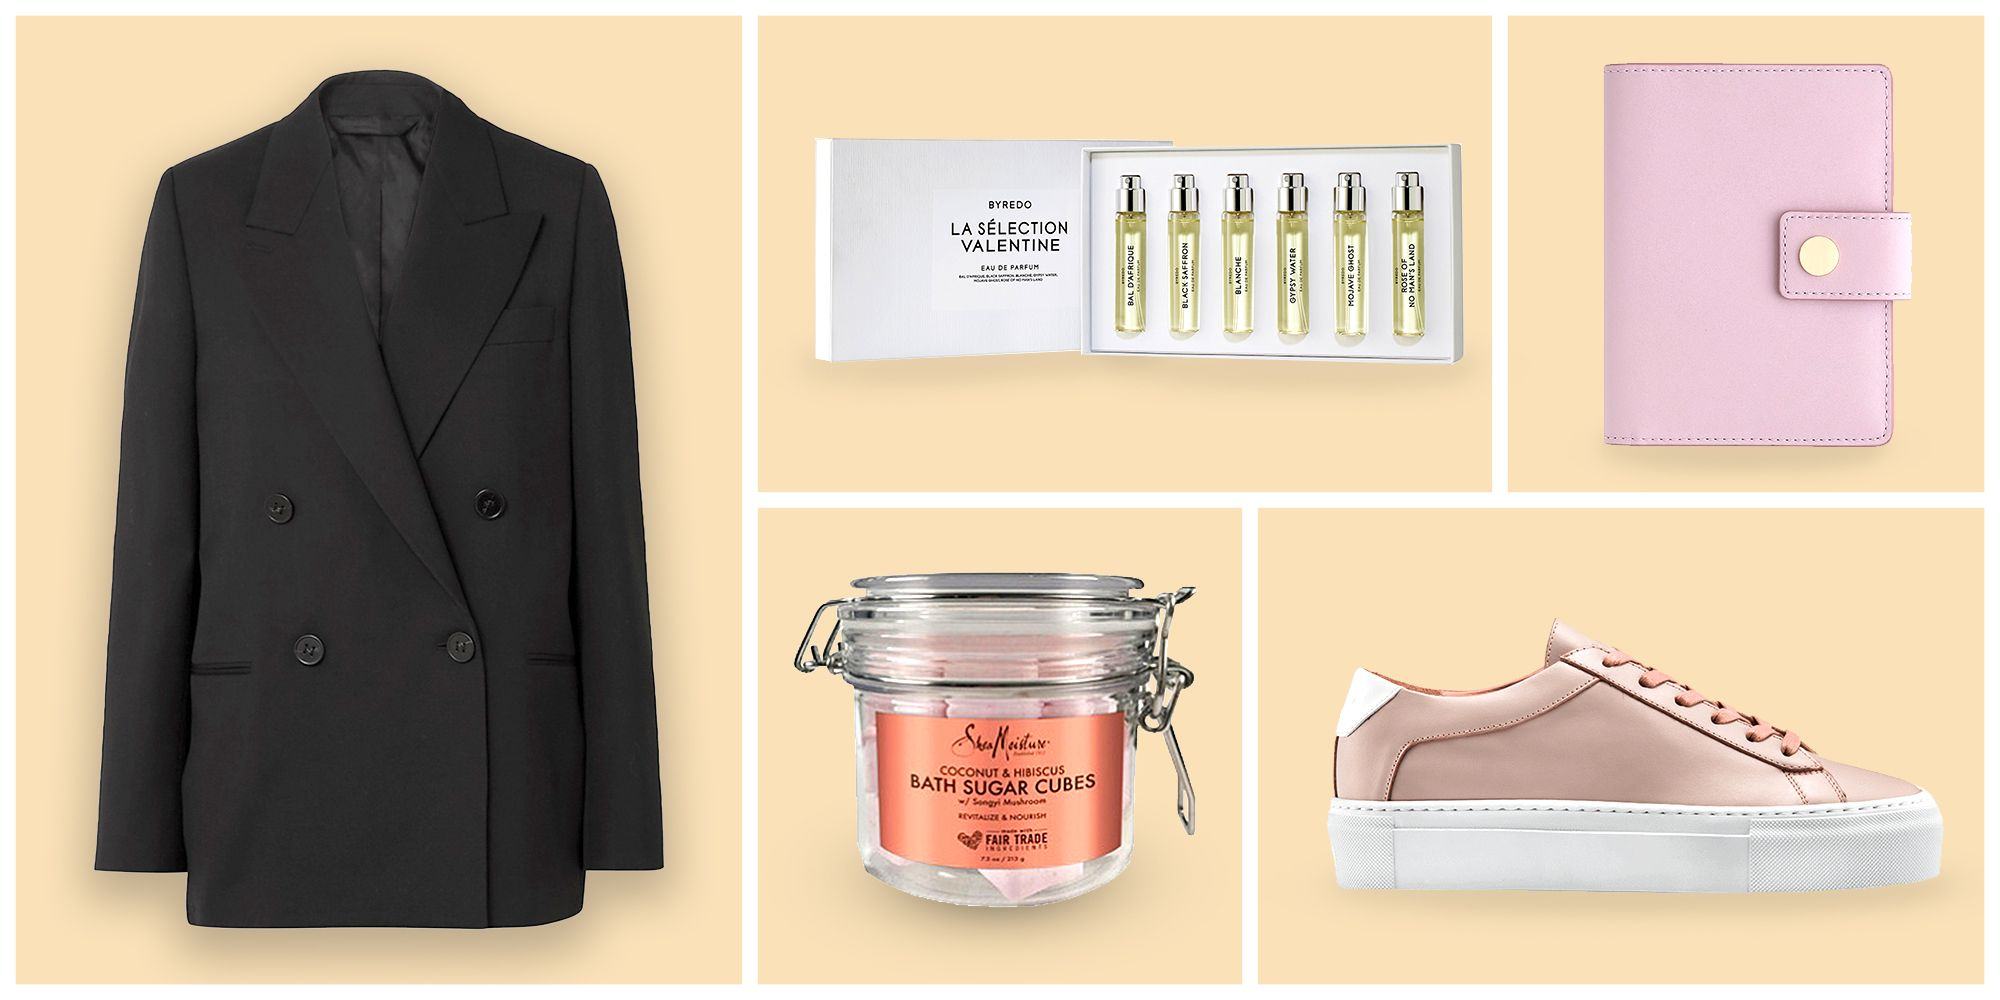 53 Romantic Gifts That Are Better Than Drugstore Chocolates